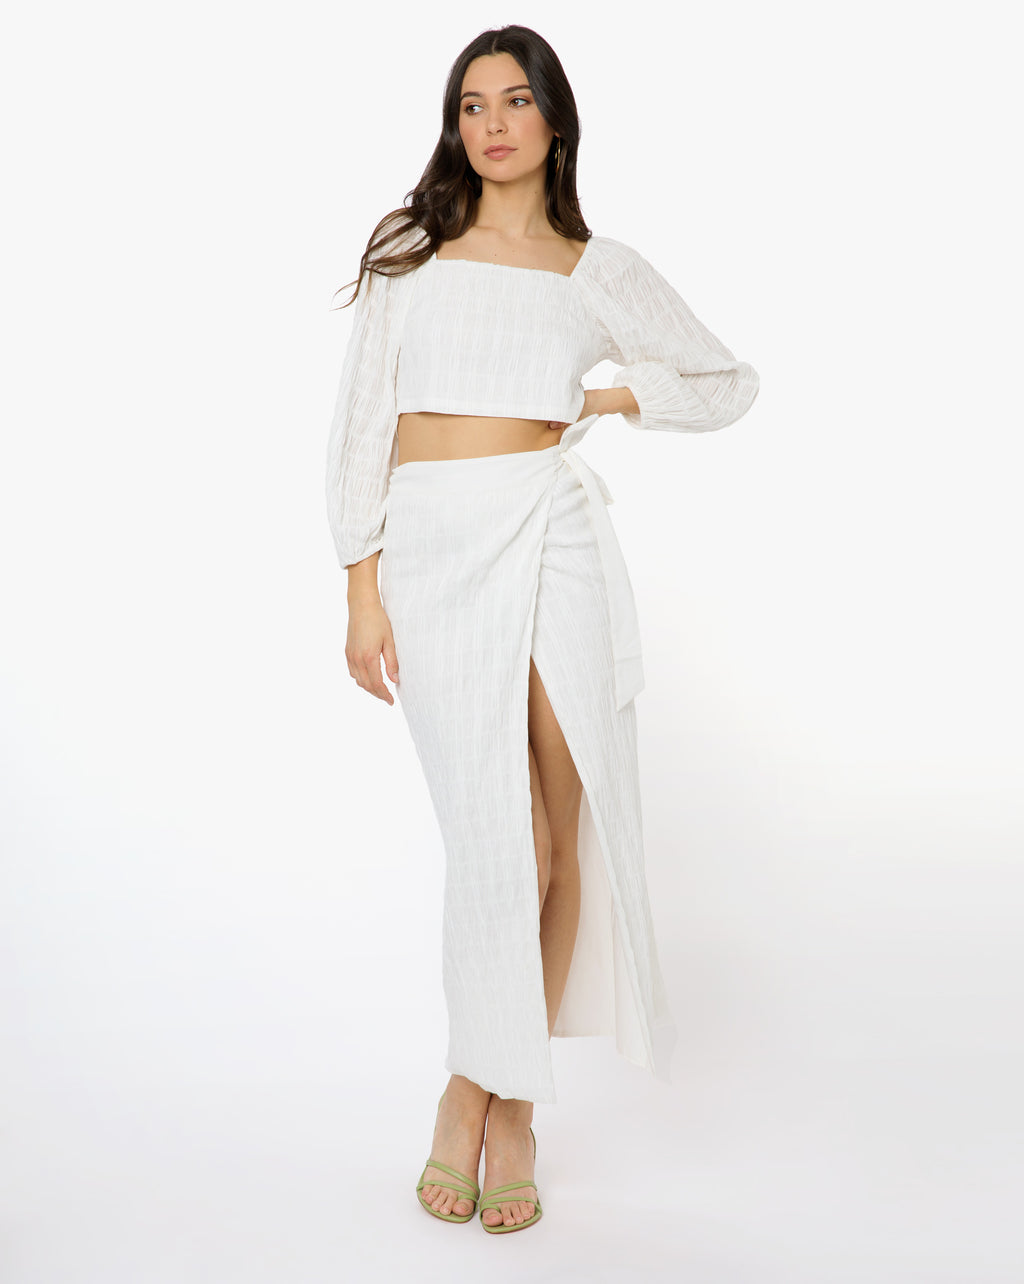 Audrey Skirt - Solid White